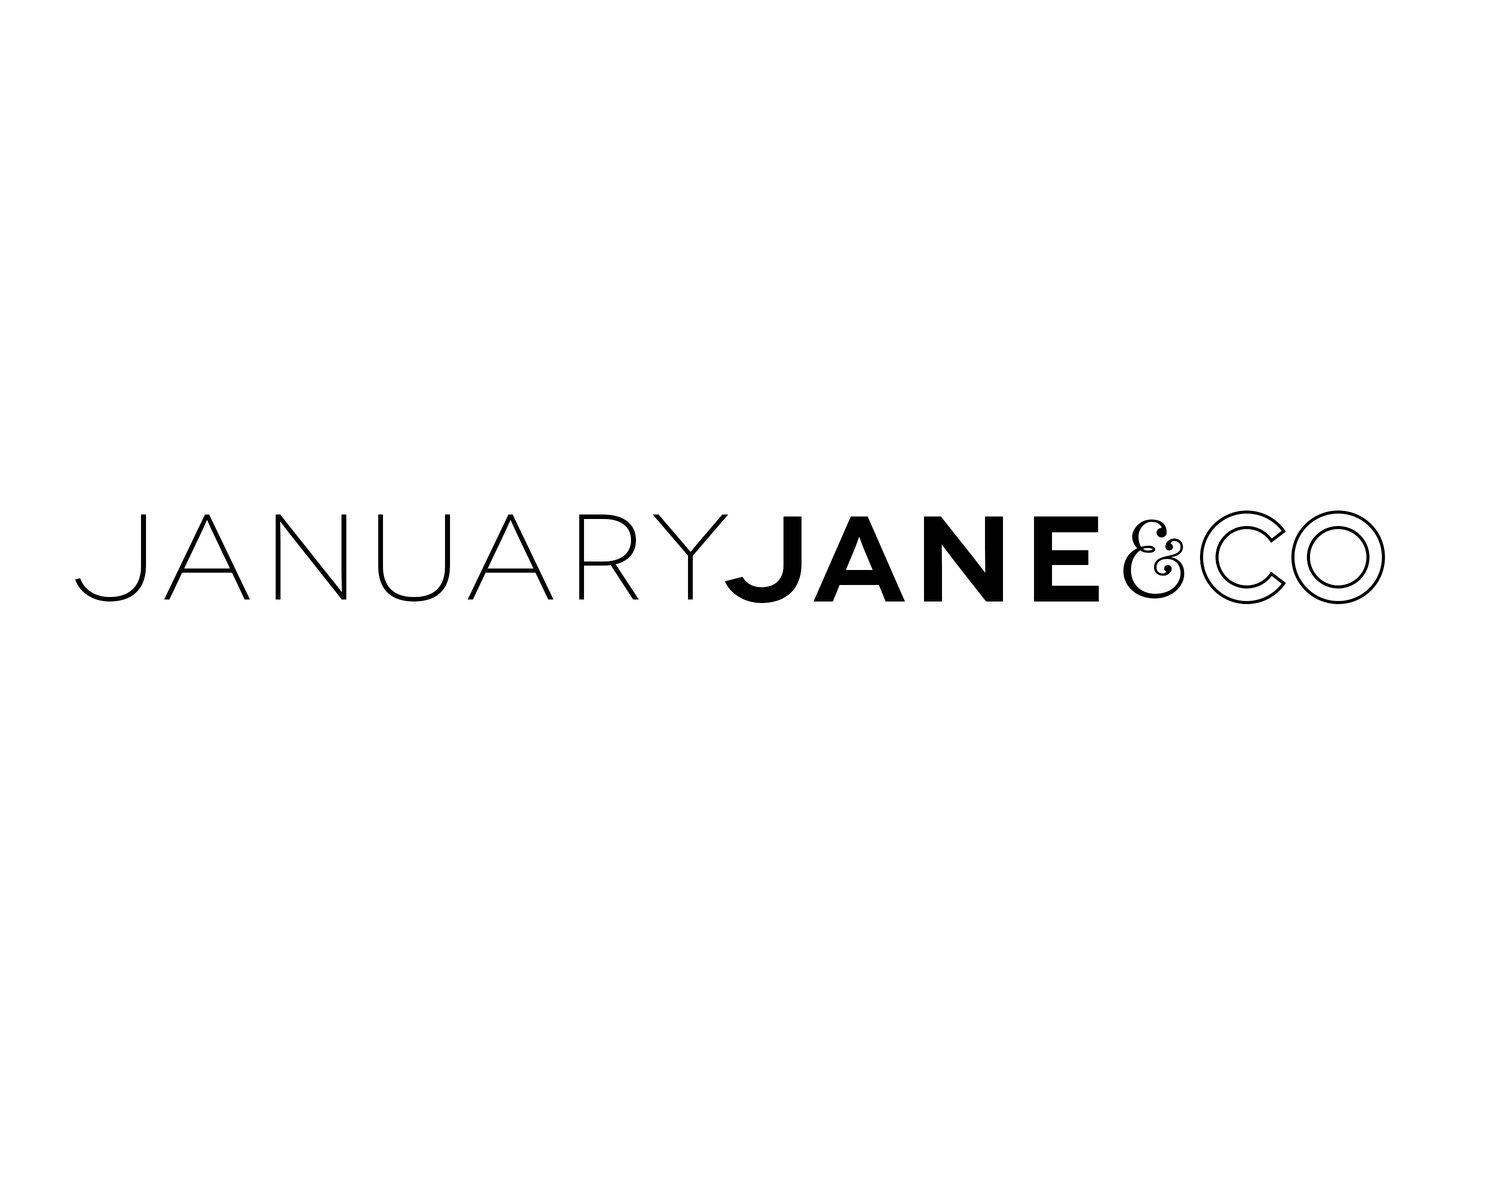 january jane & co.